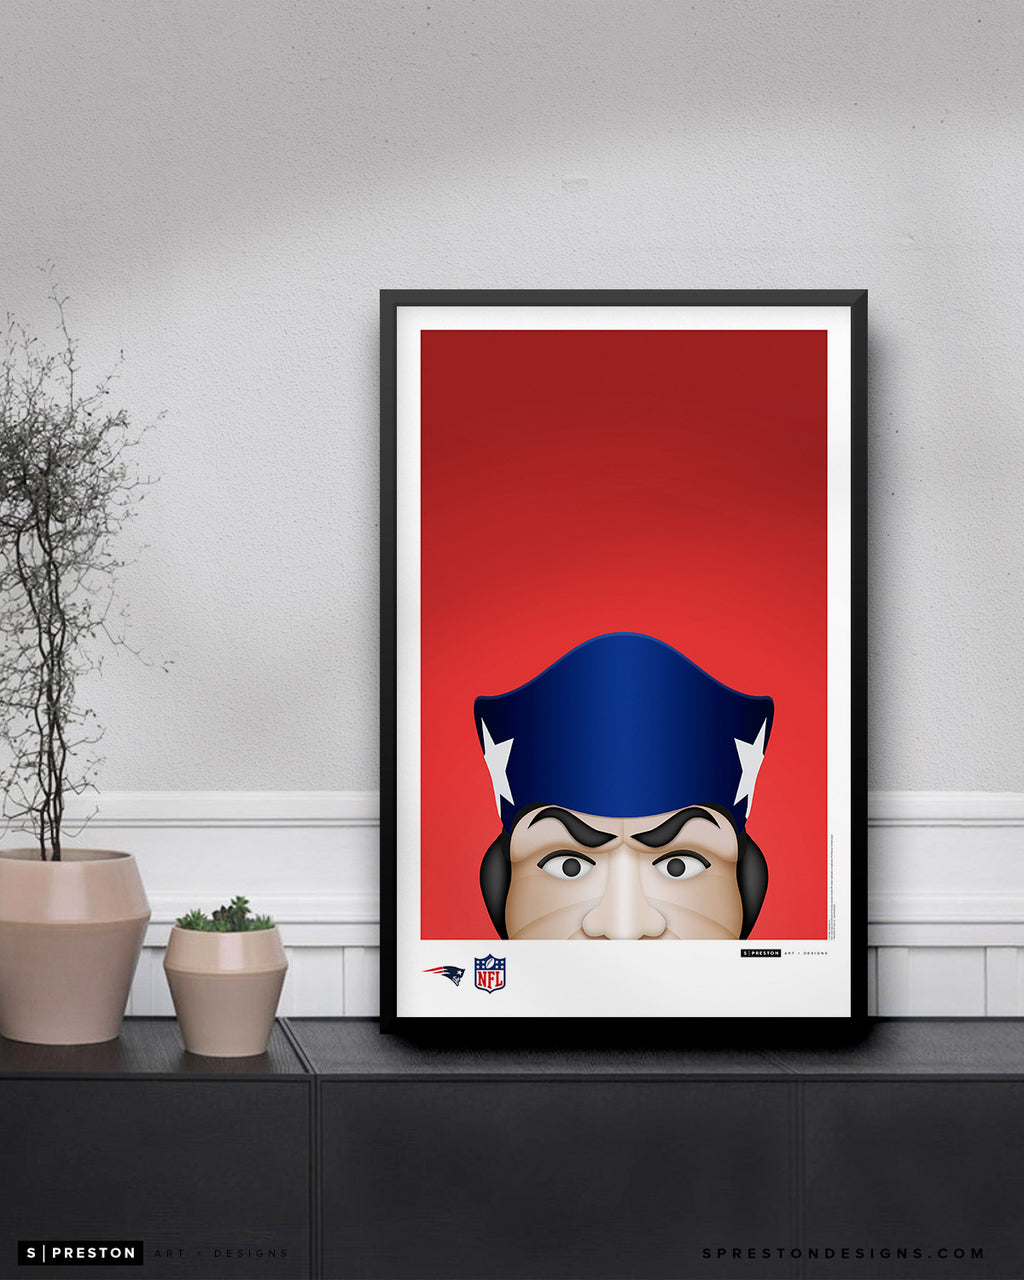 Minimalist Pat Patriot Poster Print New England Patriots - S Preston